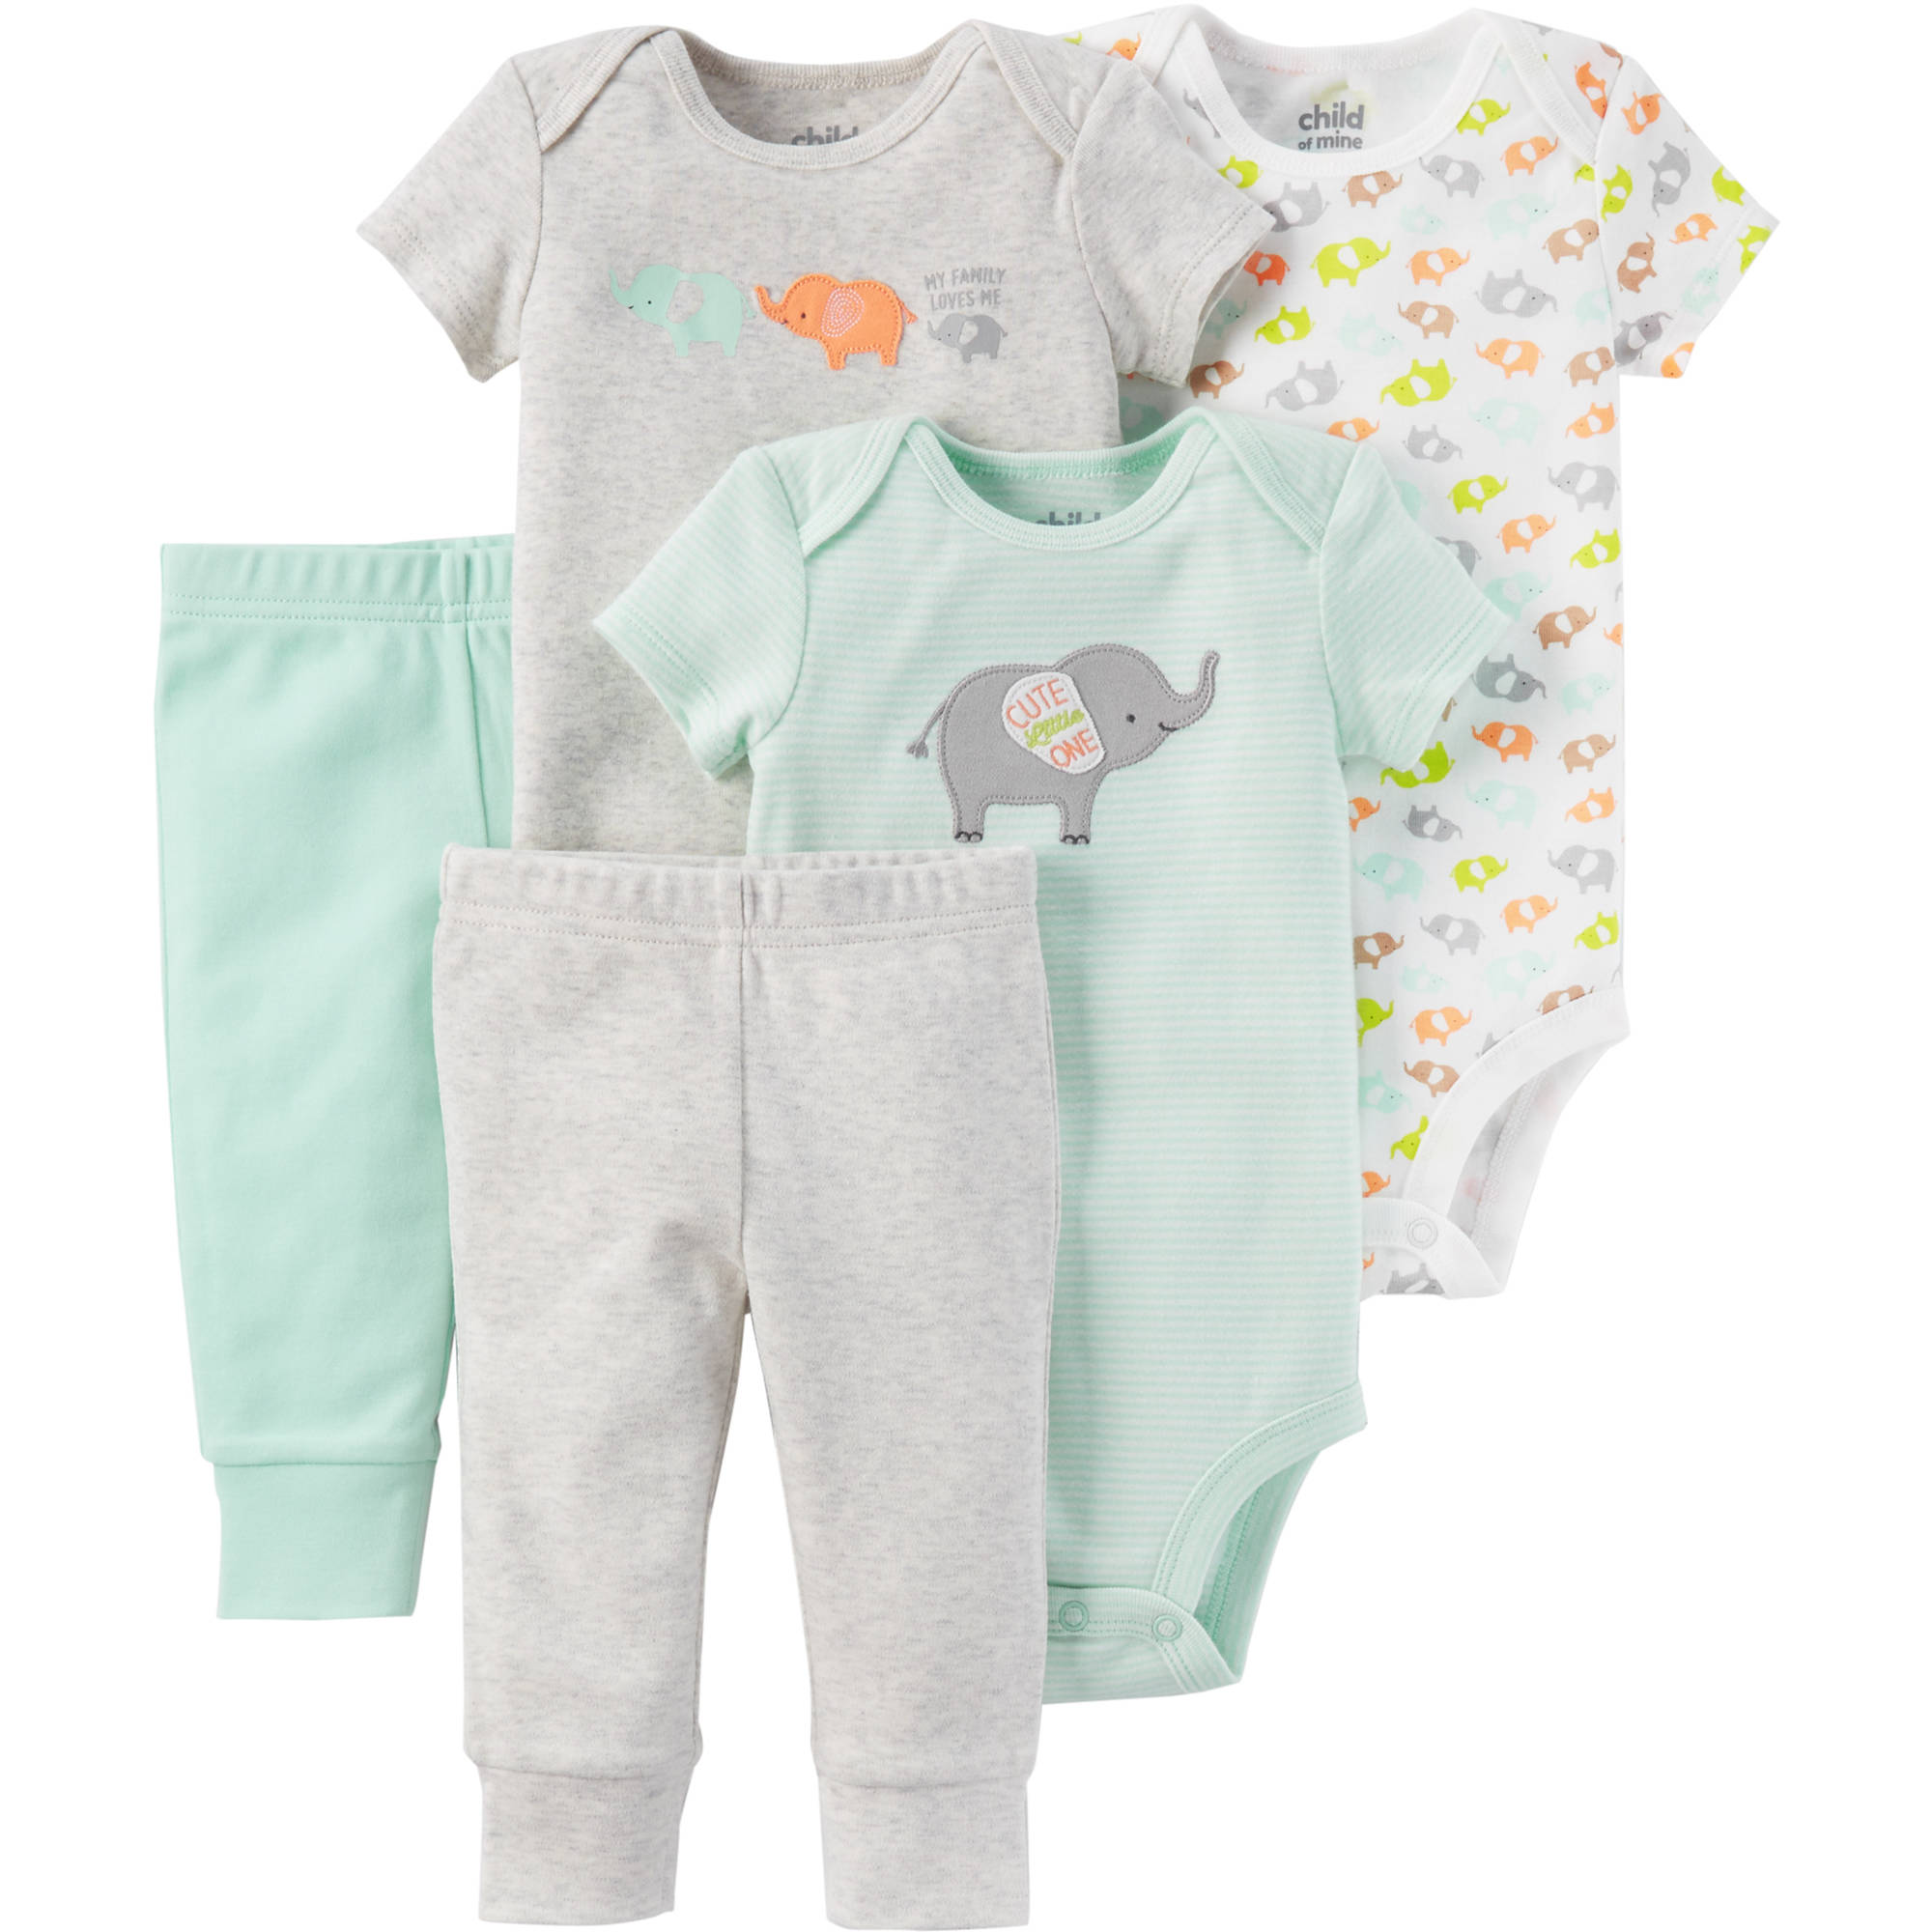 Baby & Toddler Clothing - Walmart.com